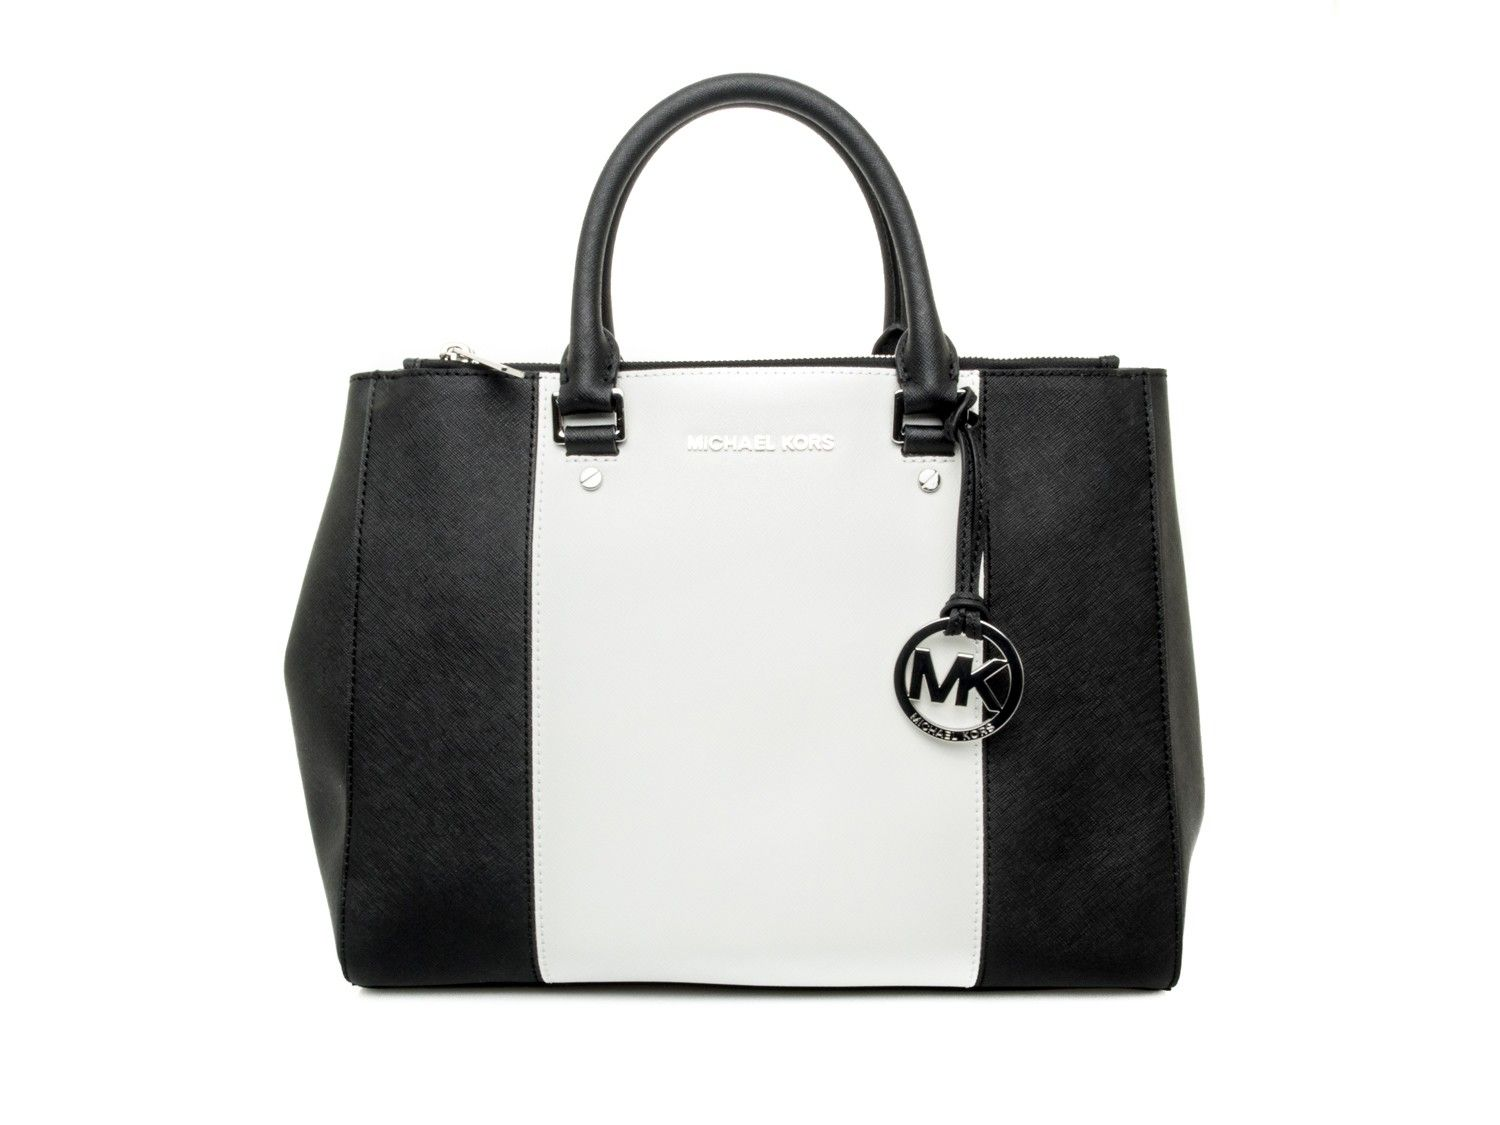 a08deaed92 MICHAEL KORS - Shopping bag in saffiano leather bicolor - Black/white - Elsa -